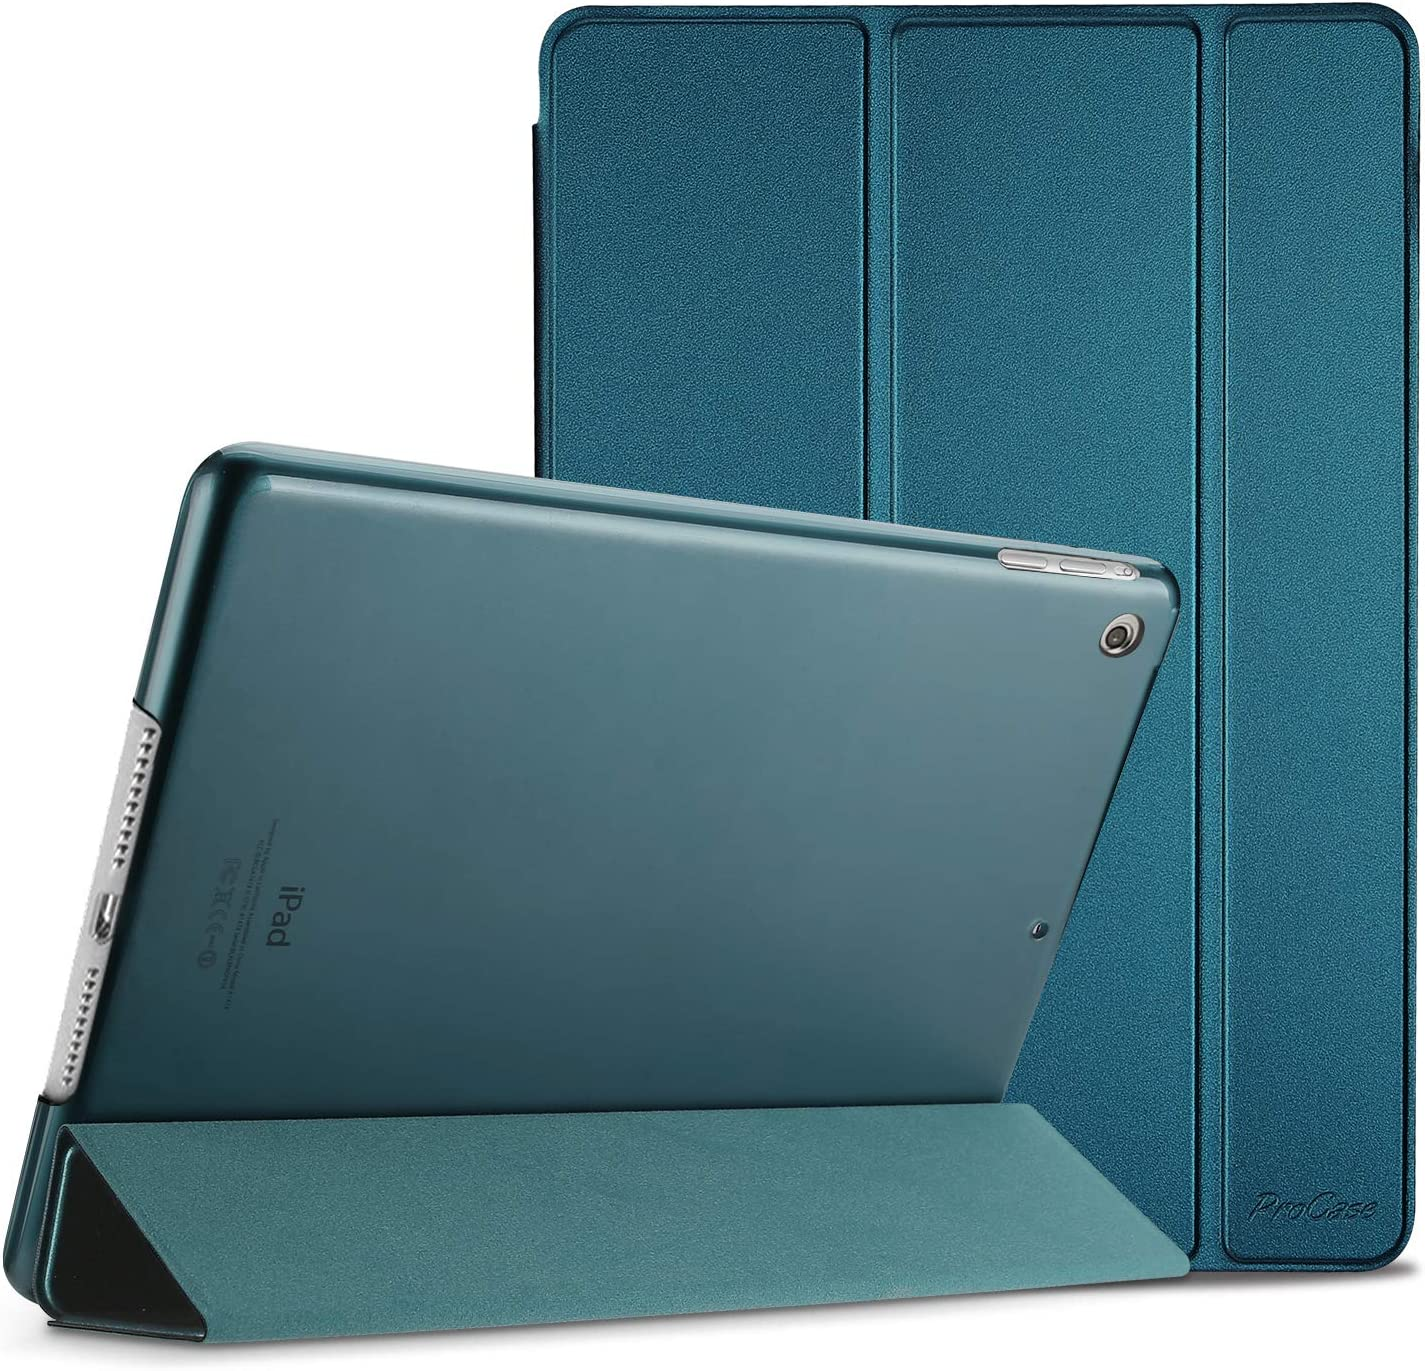 """ProCase iPad Mini 1 2 3 Case(Old Model A1432 A1490 1455), Slim Lightweight Stand Cover with Translucent Frosted Back Smart Case for 7.9"""" Apple iPad Mini, Mini 2, Mini 3, with Auto Sleep/Wake –Teal"""